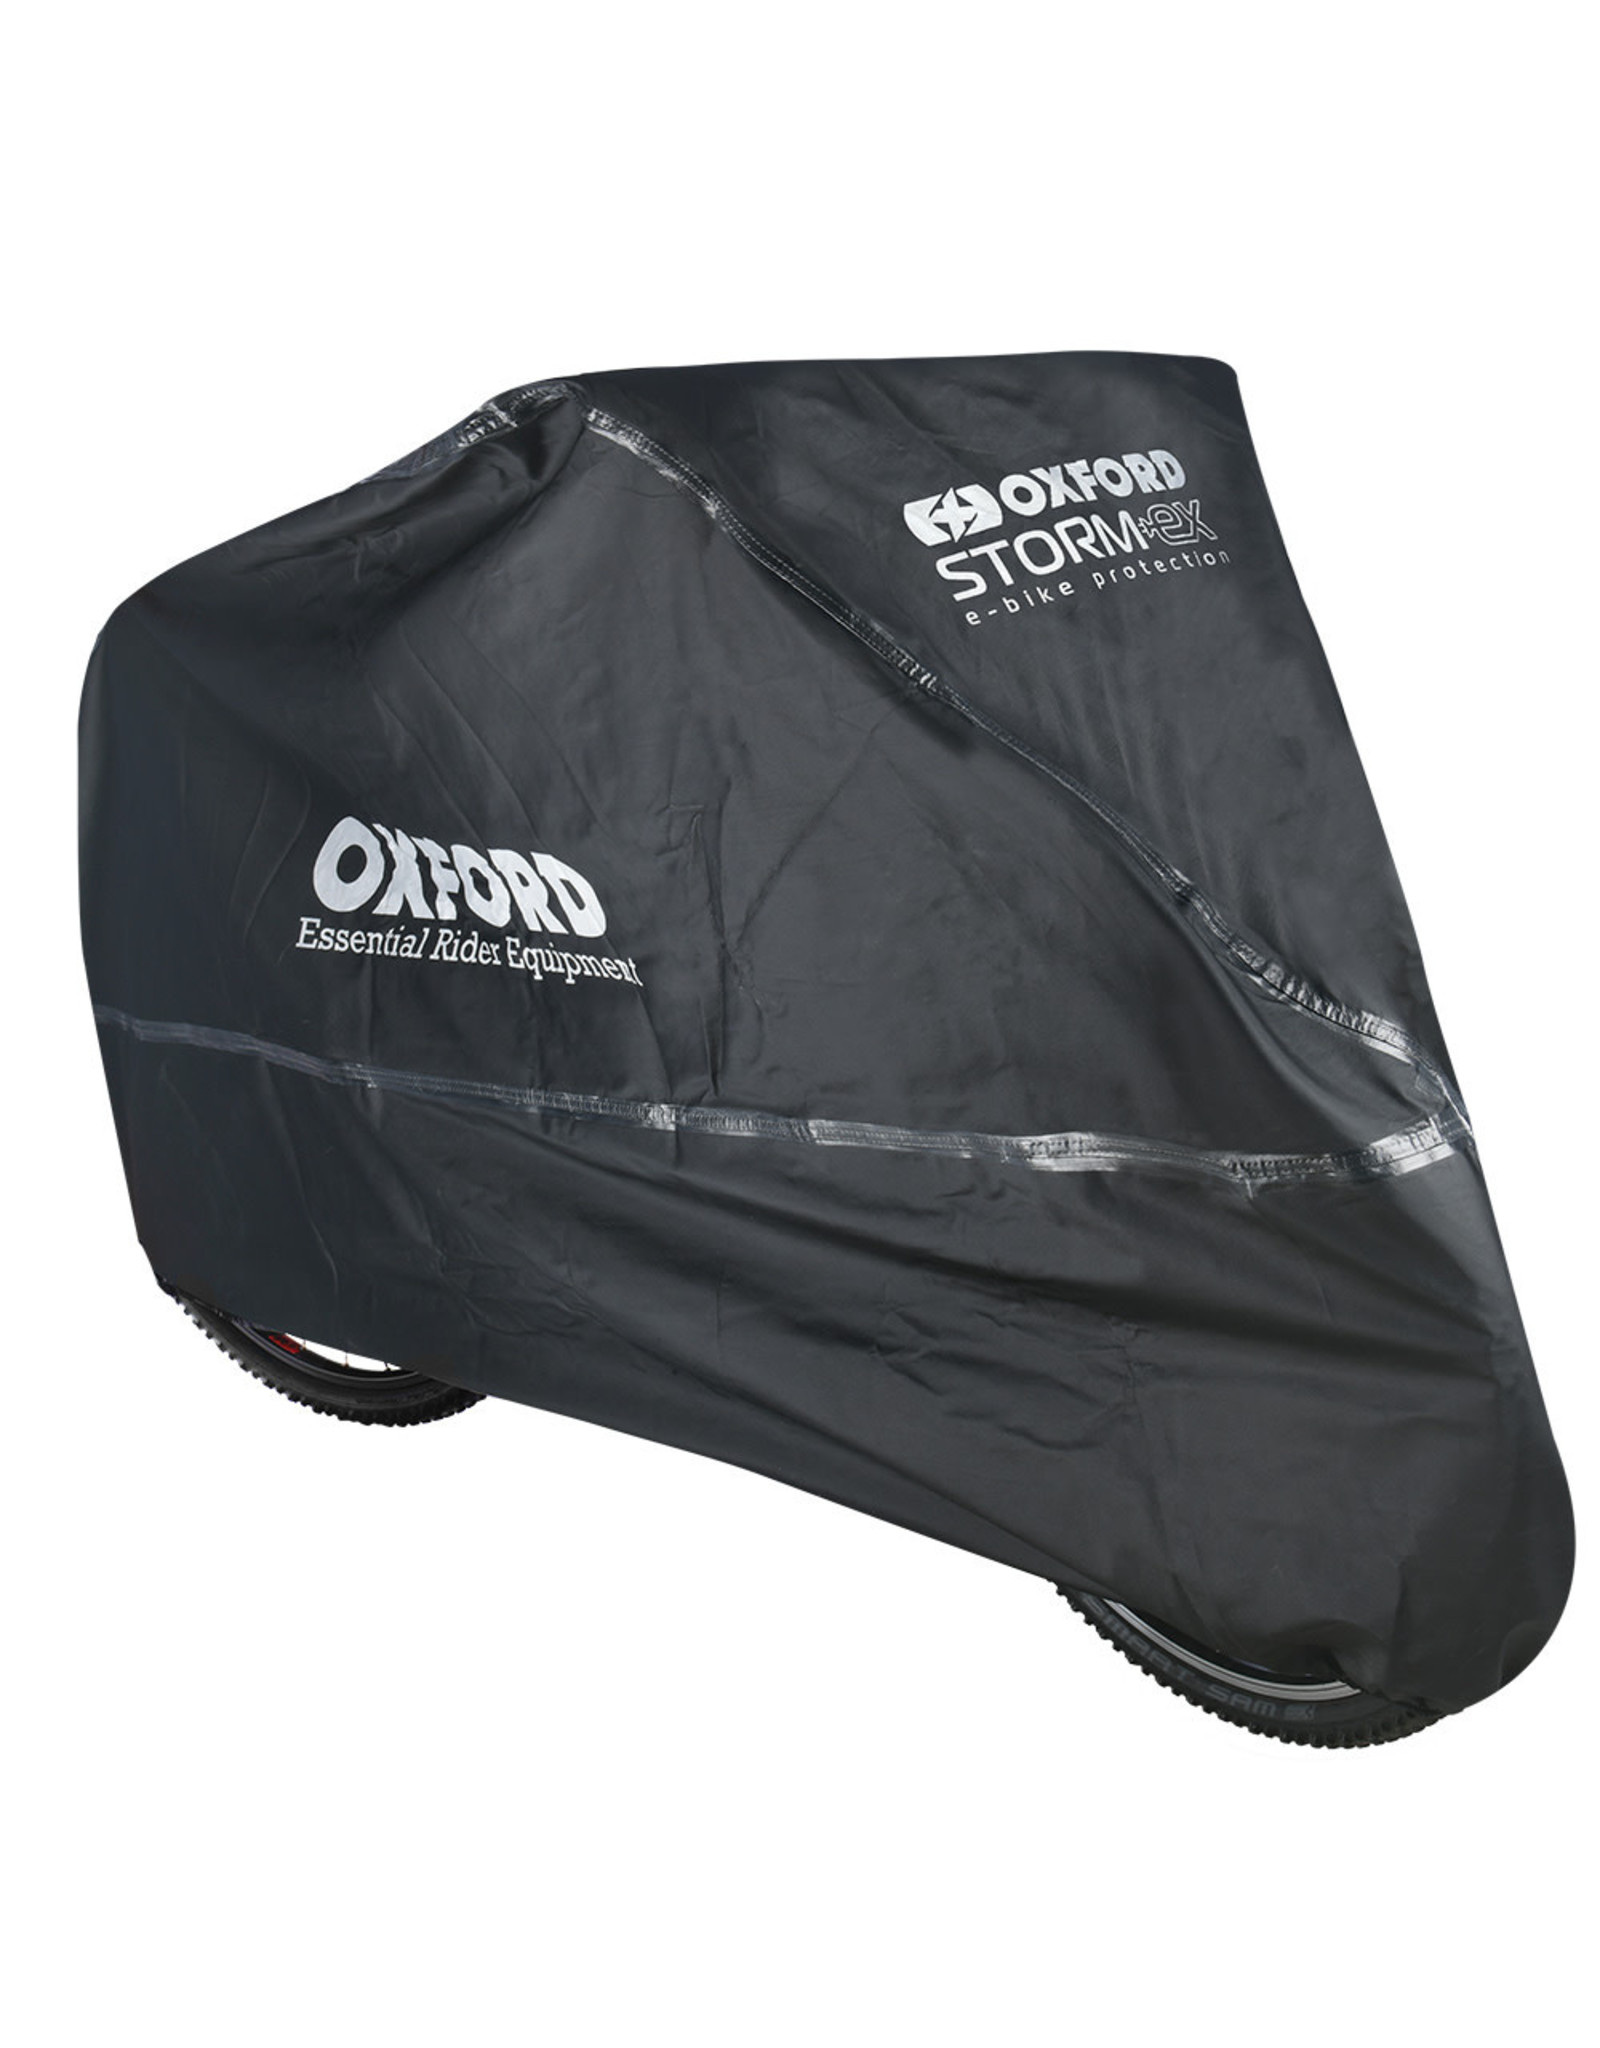 Stormex 1 Bike Cover Single